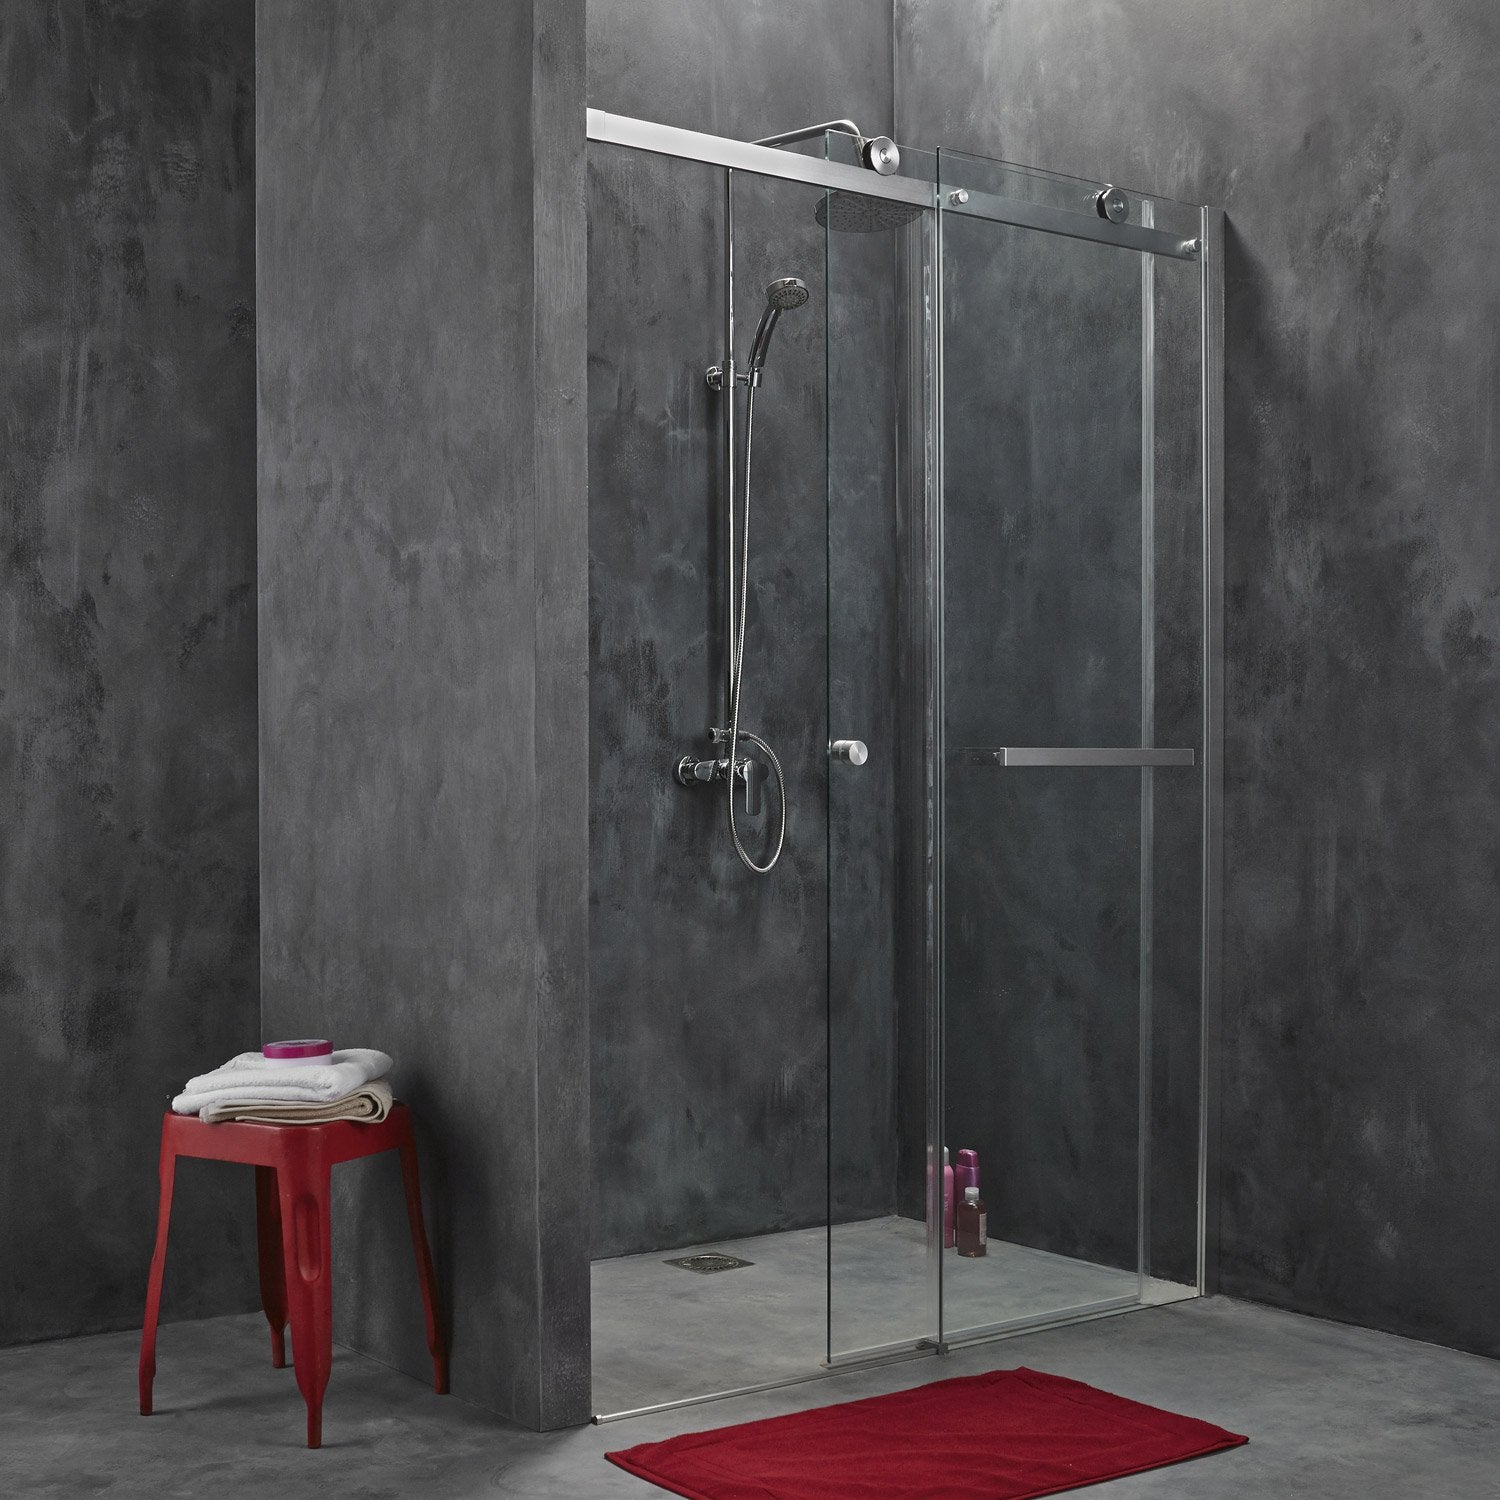 porte de douche coulissante 137 140 cm profile chrome With porte de douche coulissante leroy merlin